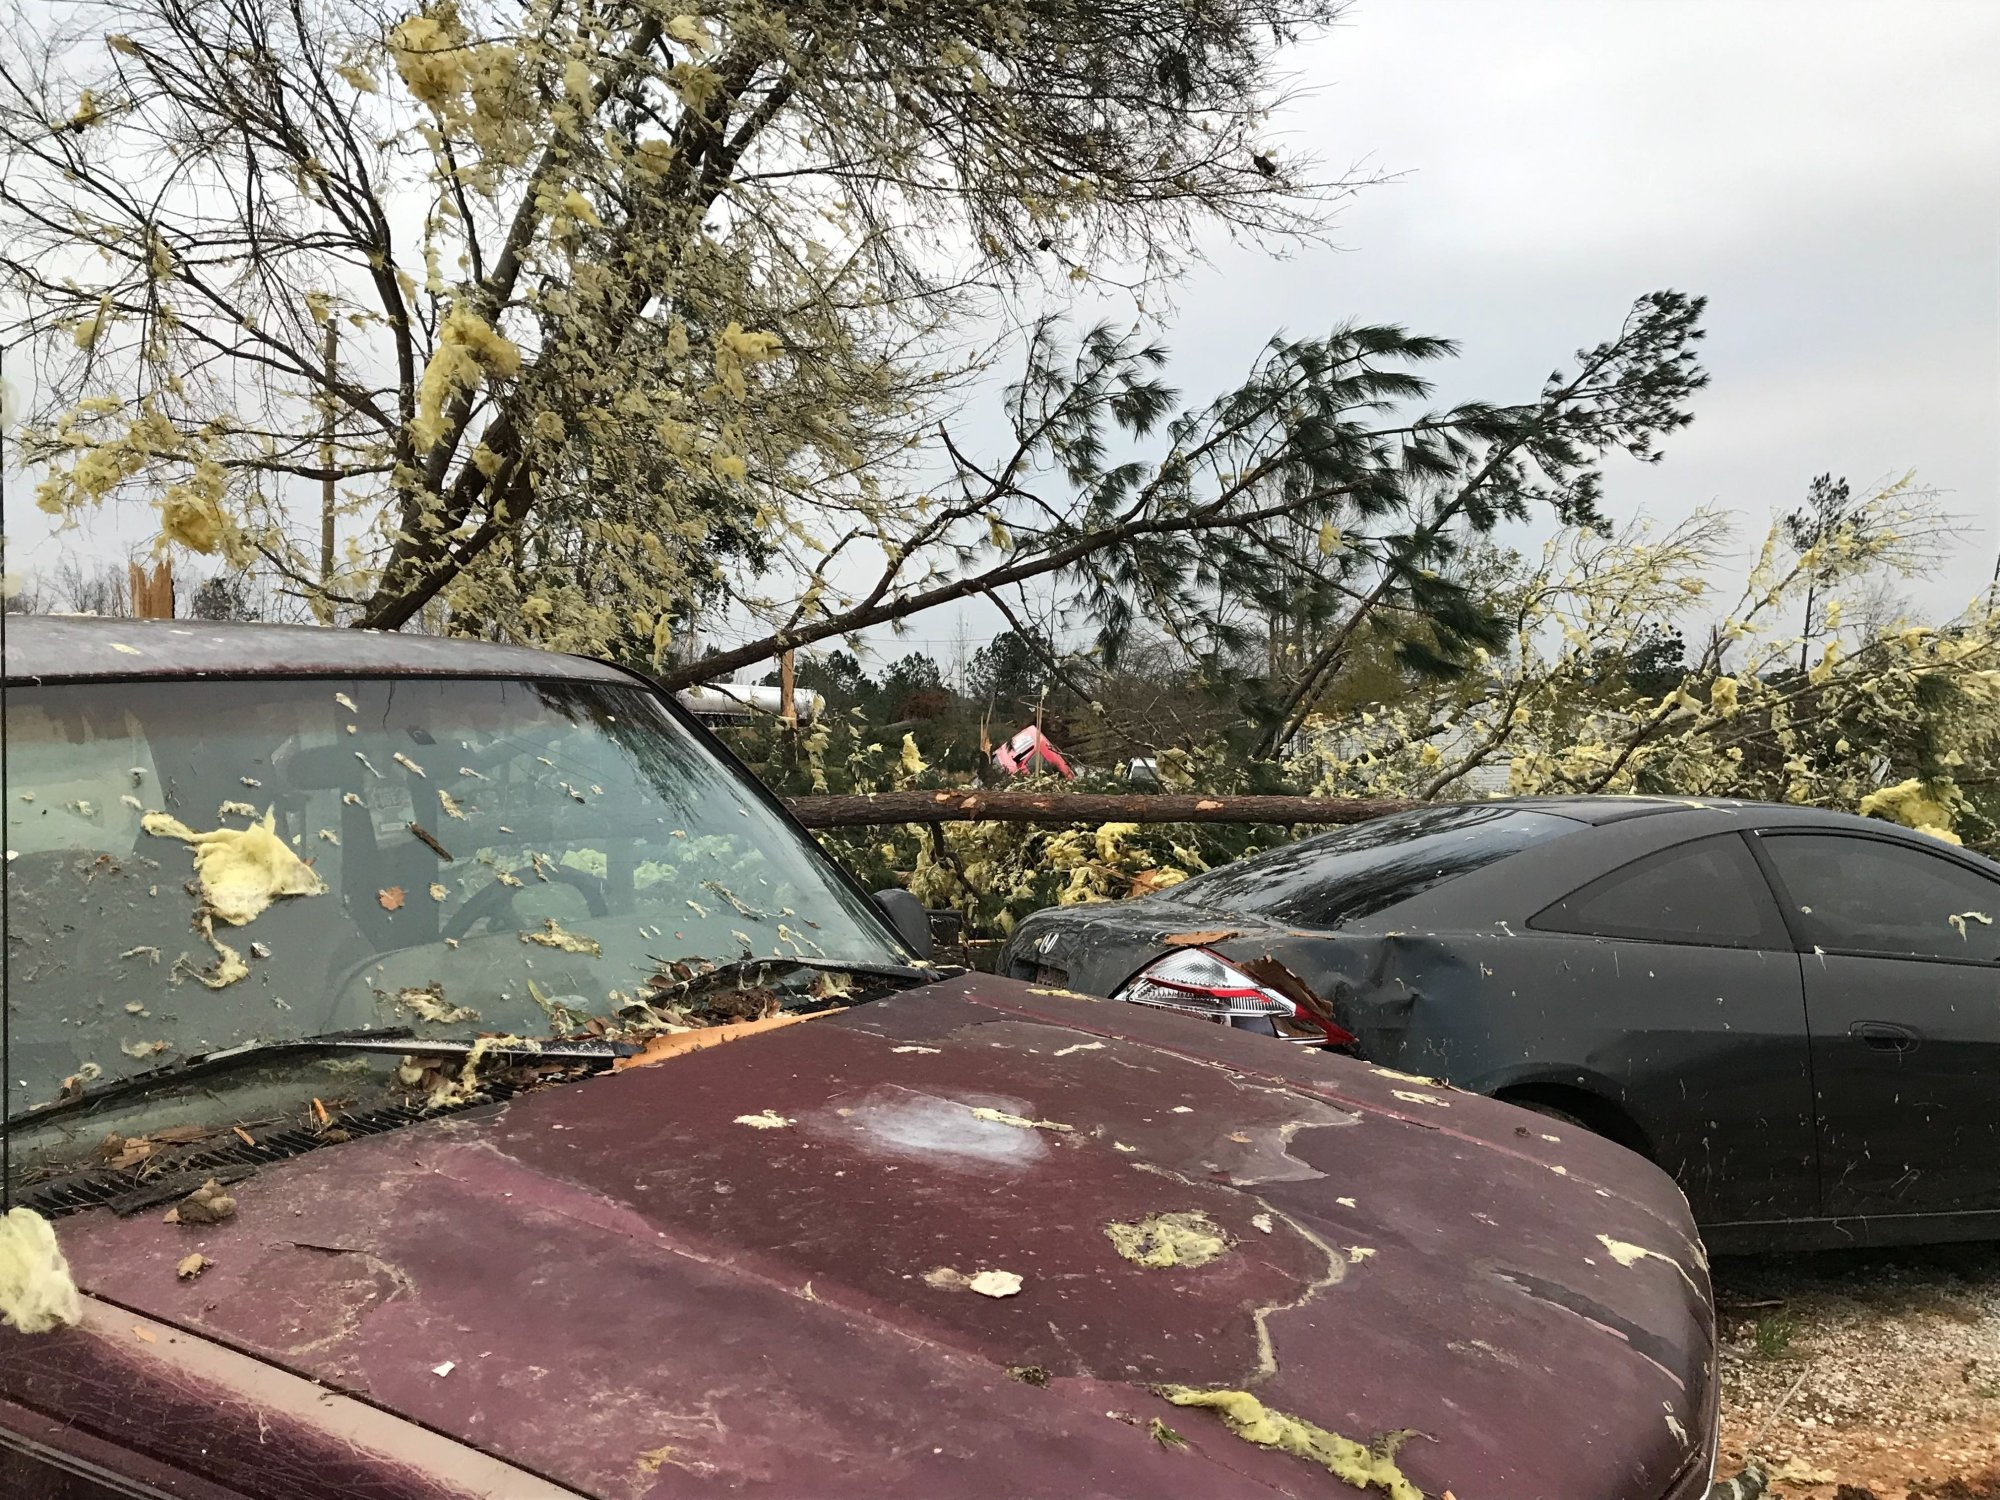 It appeared that two tornadoes hit Lee County back-to-back within the span of an hour, Norman said.